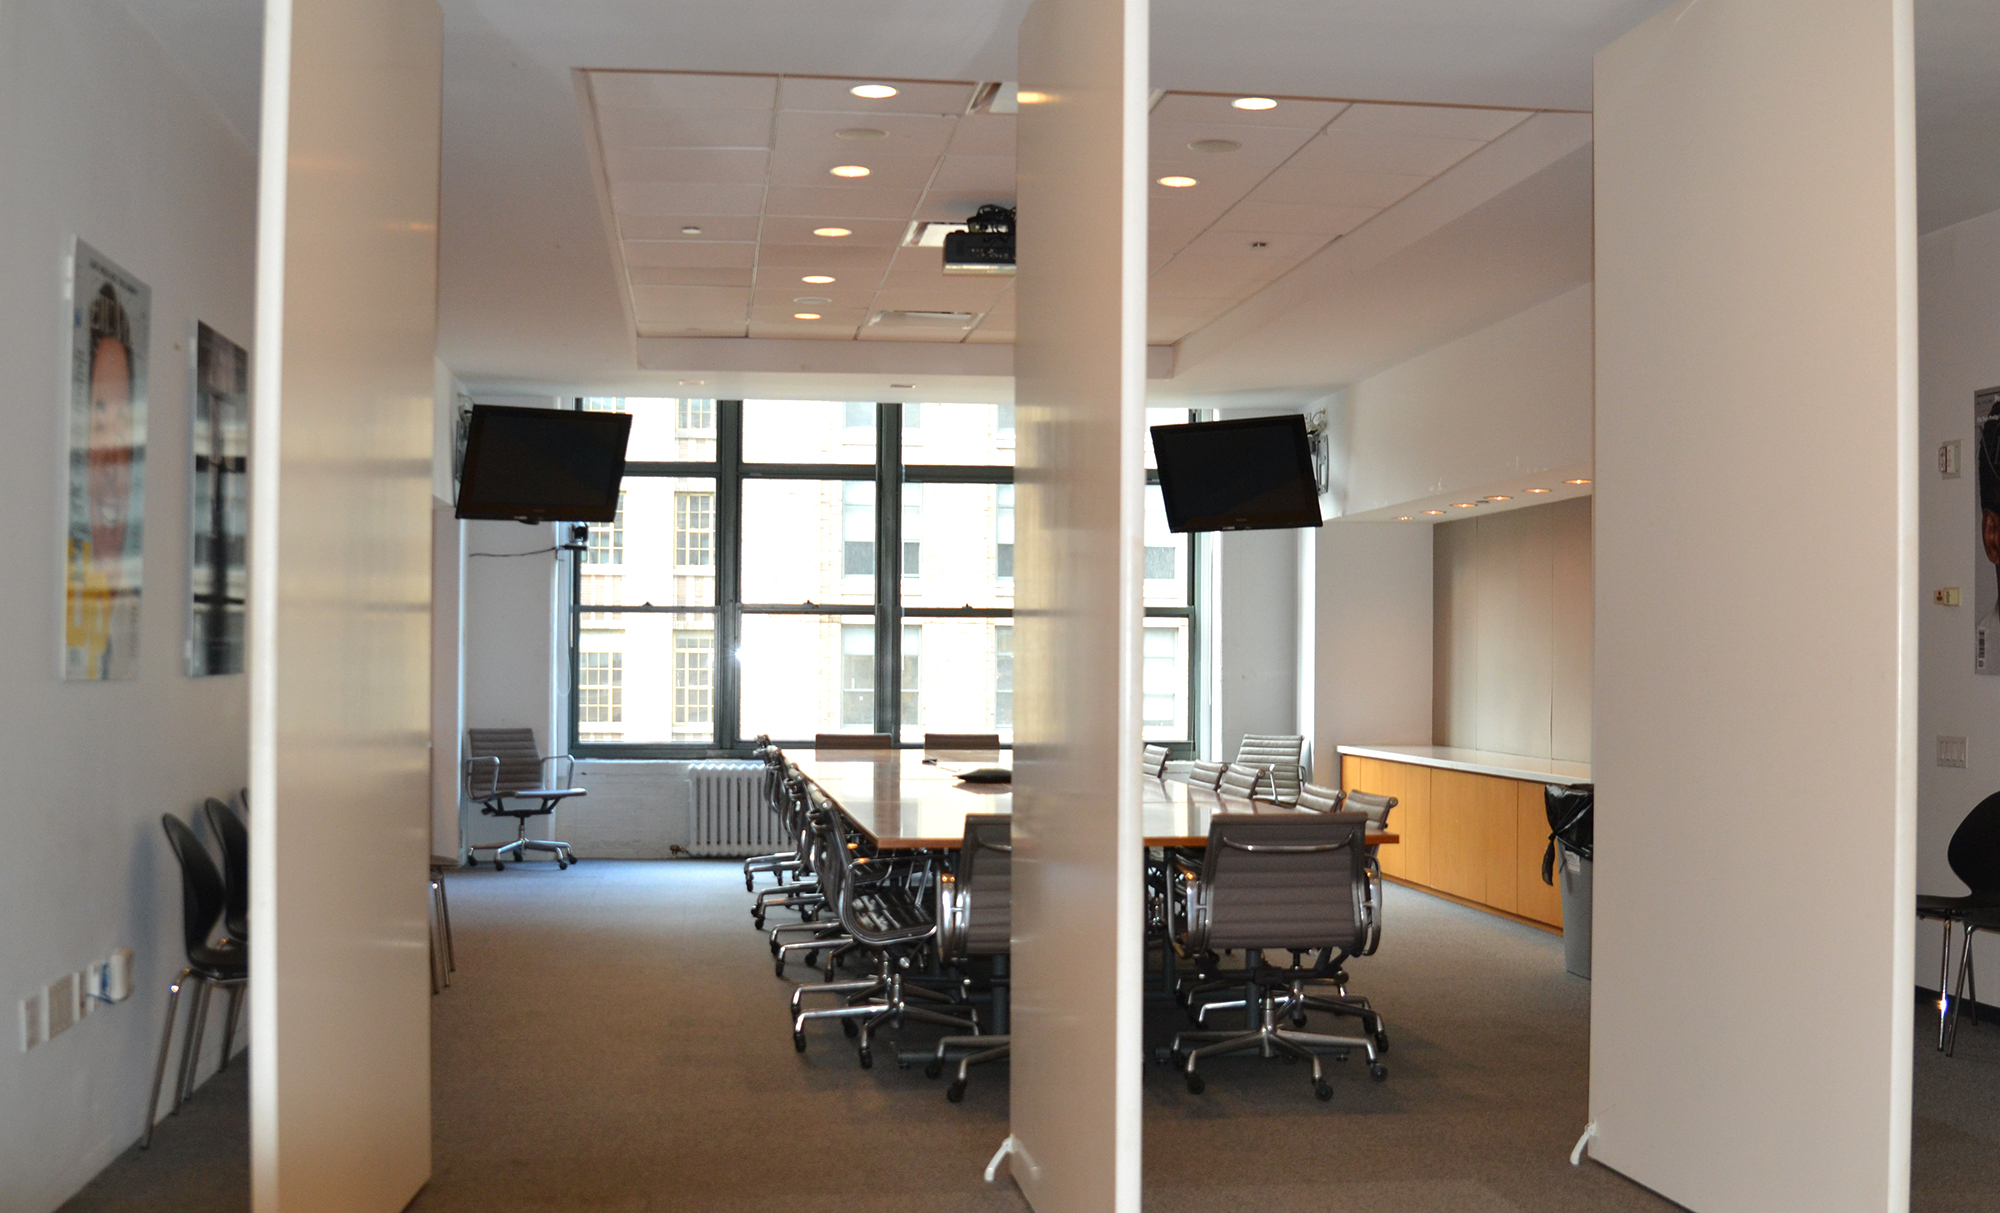 NYMag Wavelength led retrofit conference room